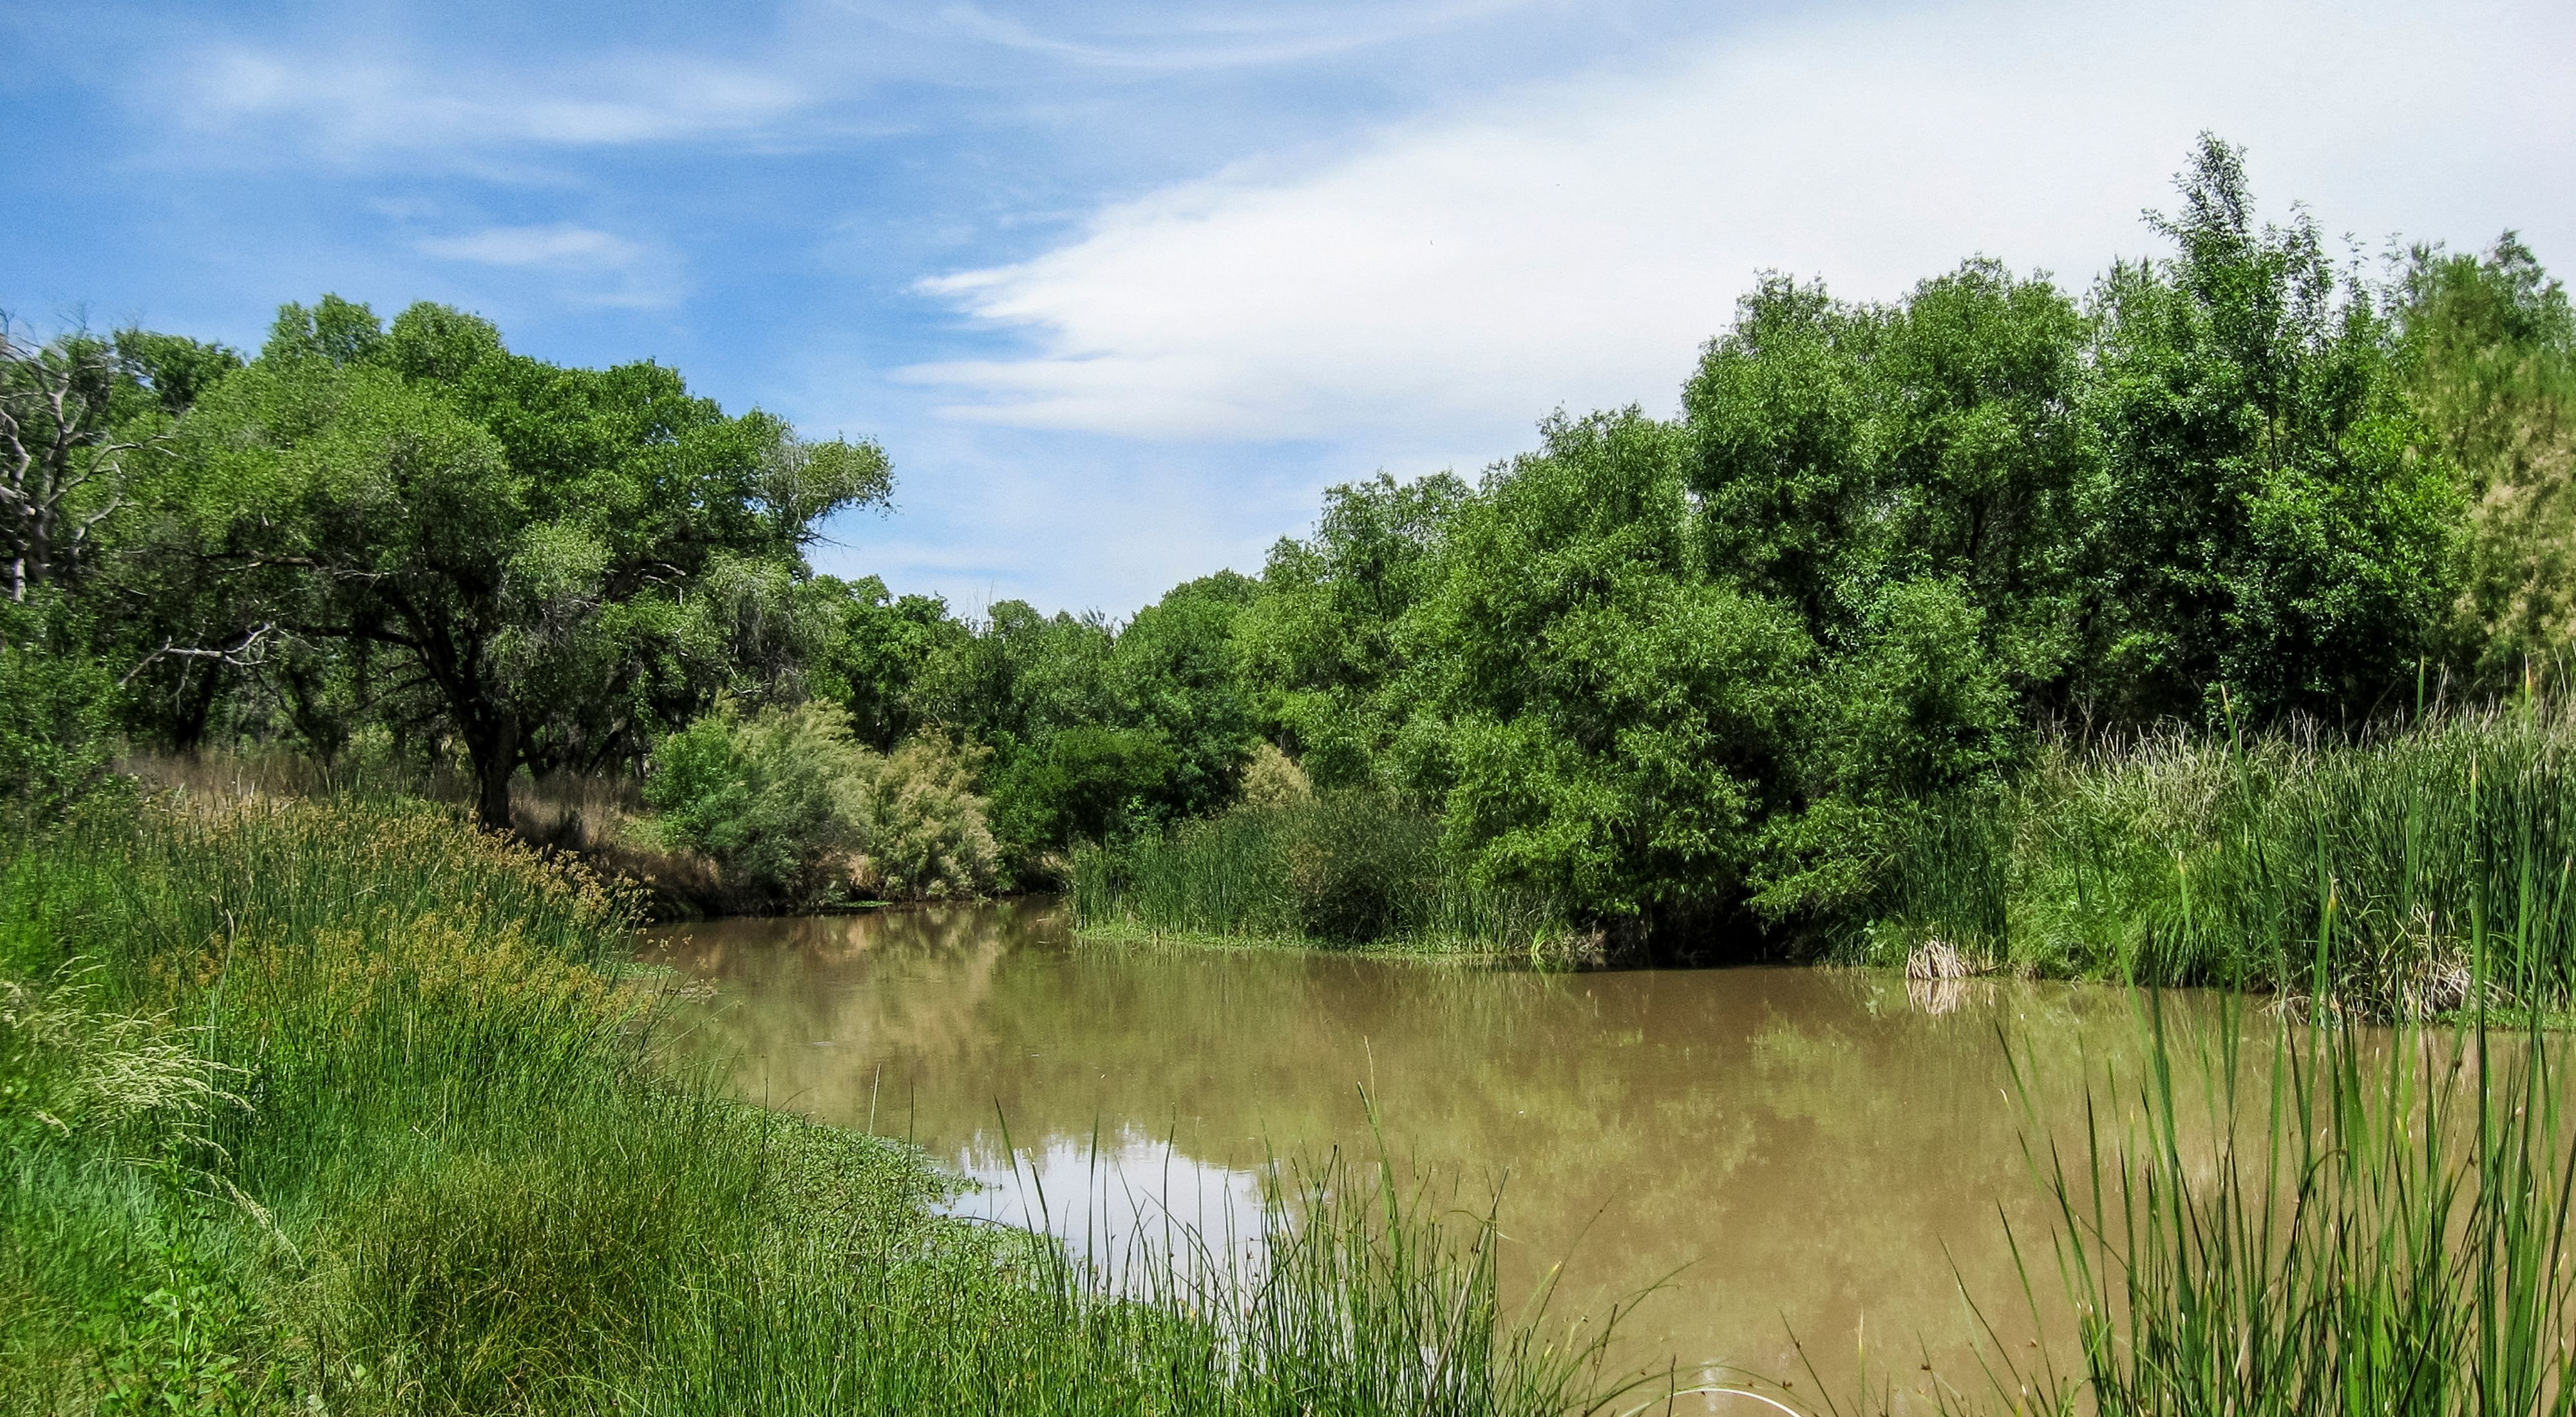 A glassy river between tree-lined banks.